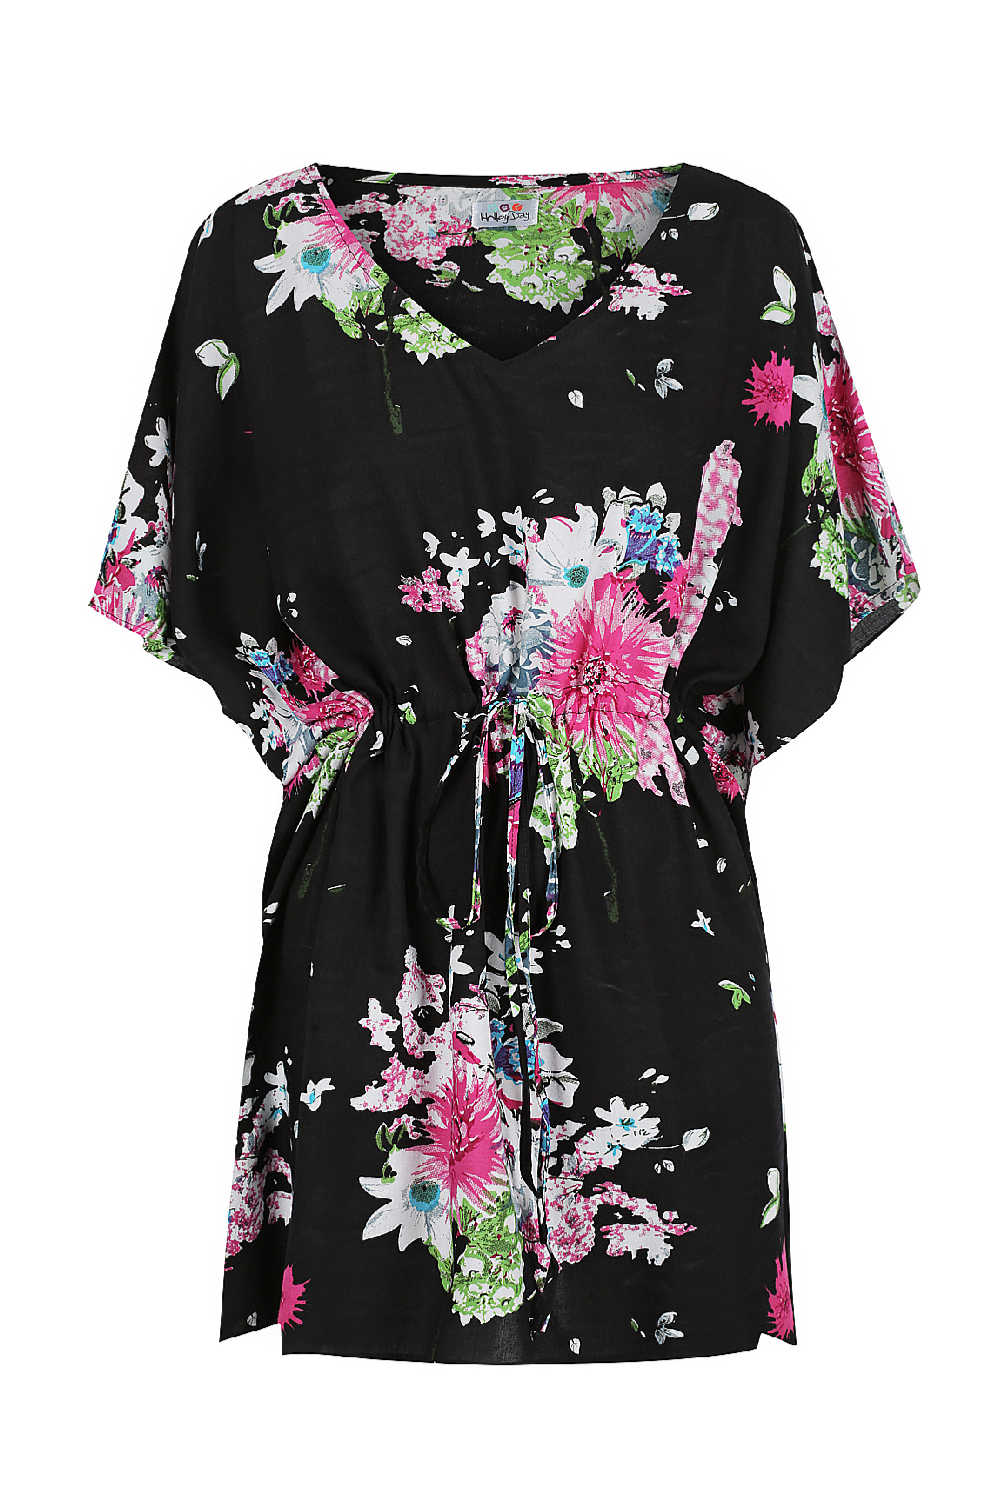 short-summer-kaftan-dress-floral-design-black